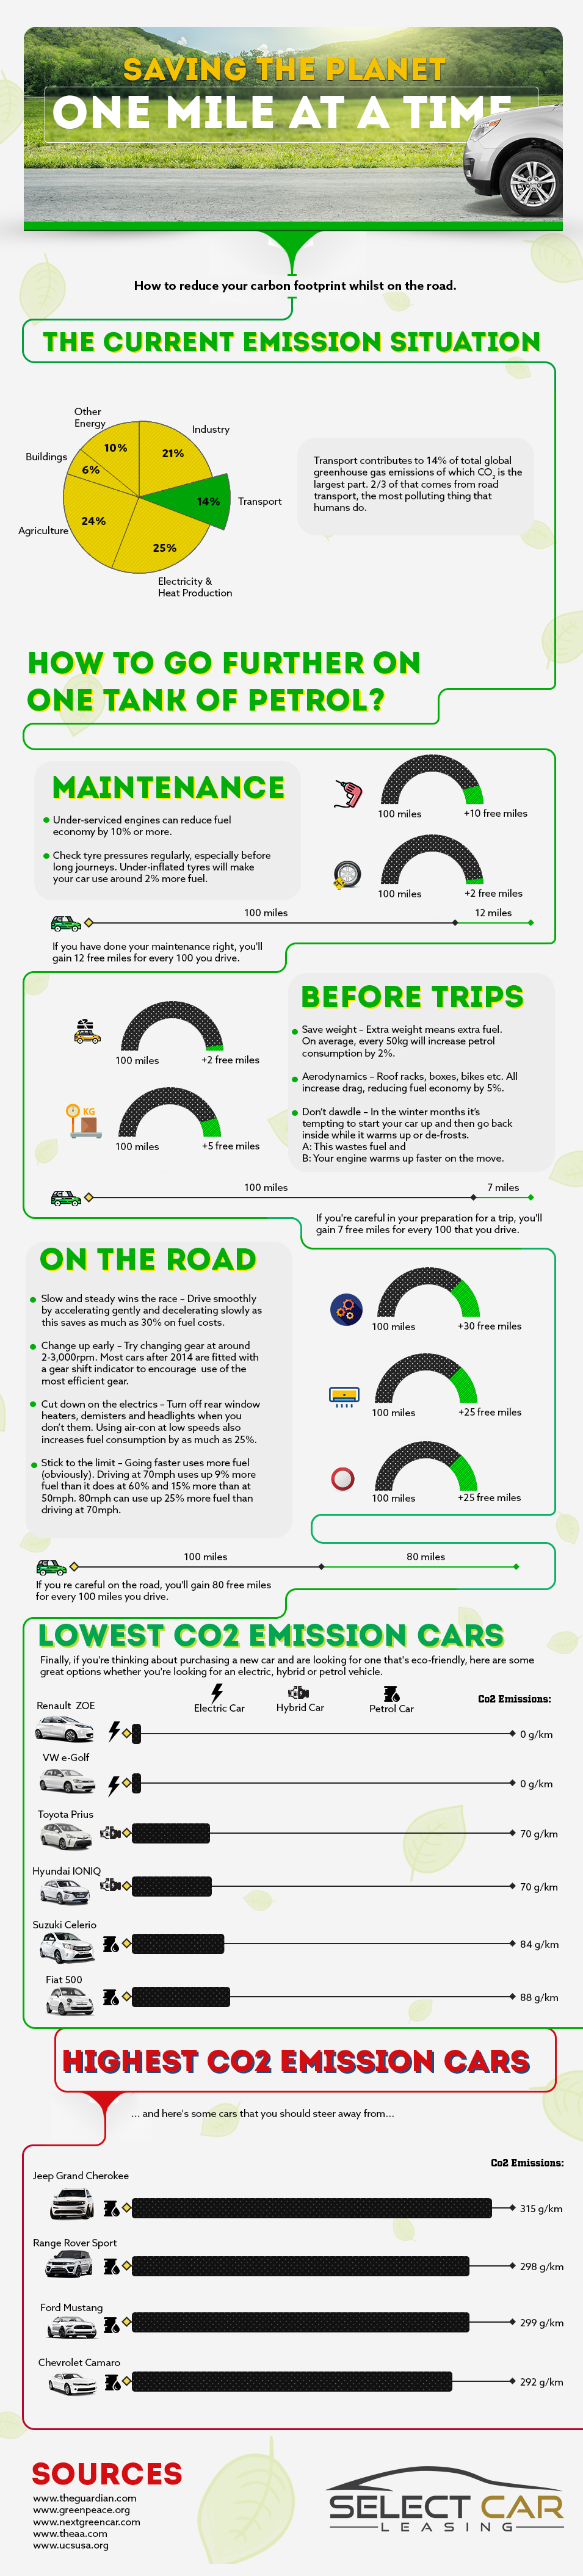 A Guide To Reducing Your Carbon Footprint - Infographic